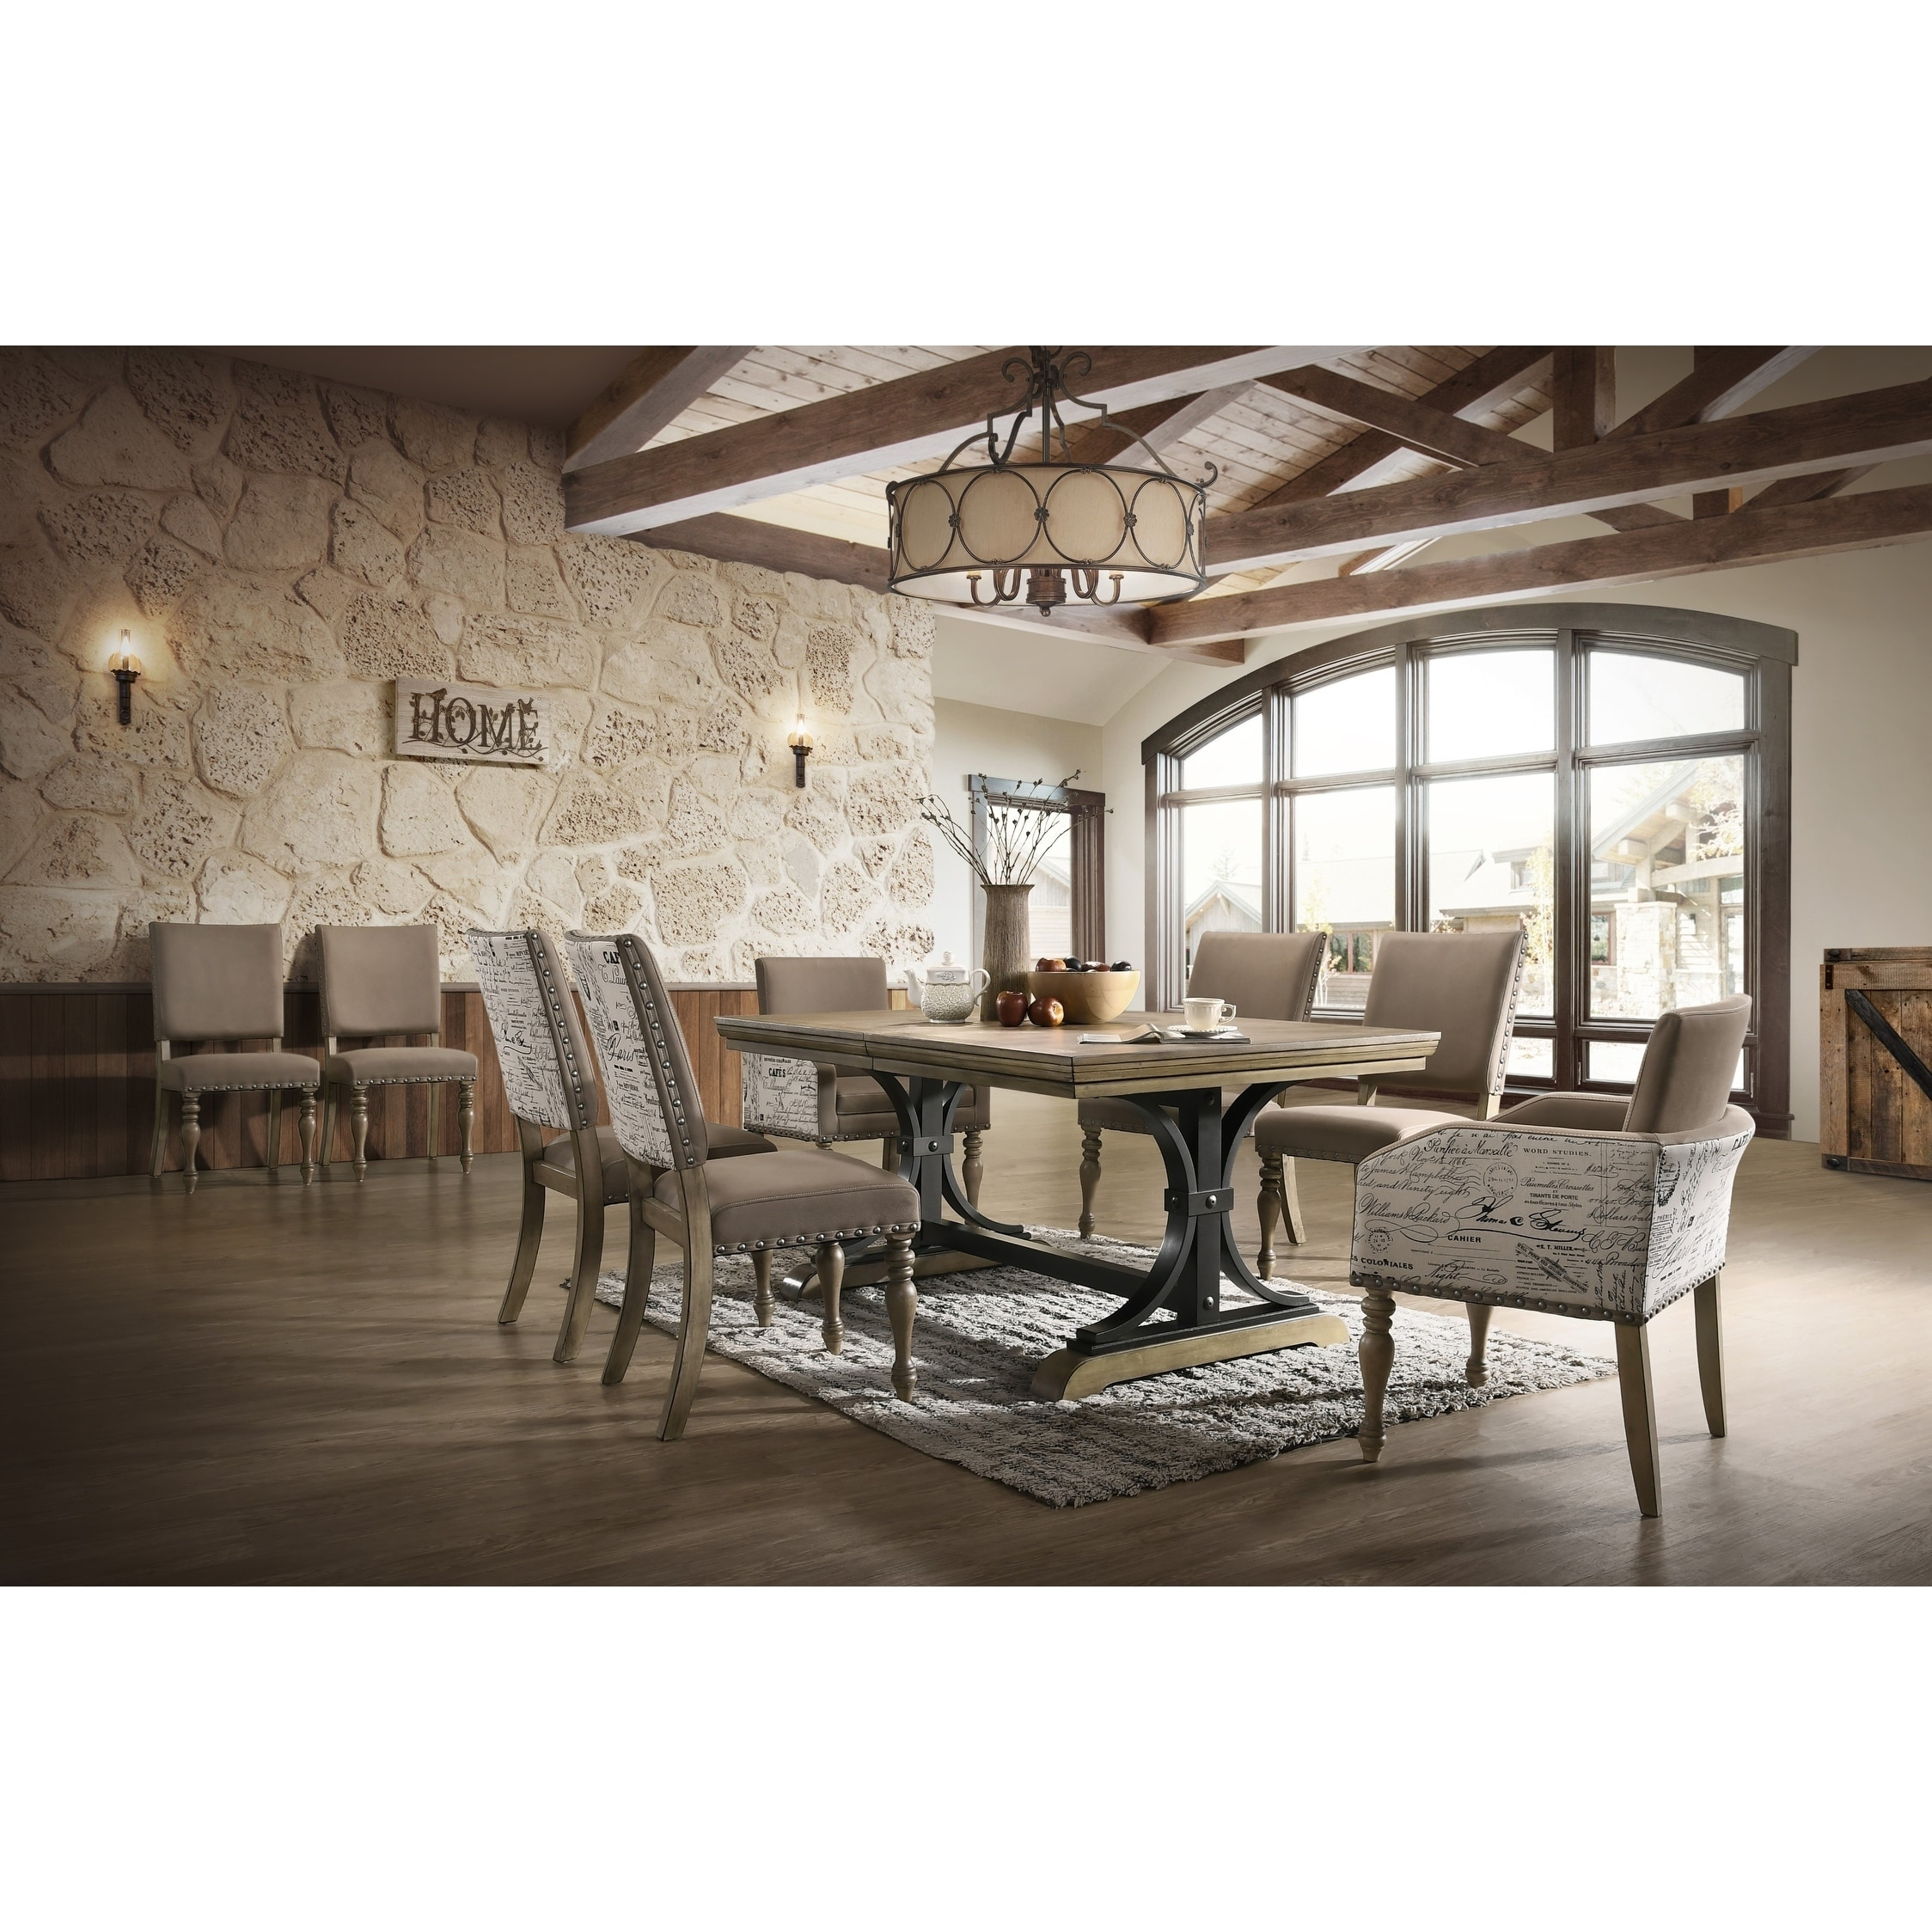 Birmingham 9 Piece Removable Leaf Table With Arm Dining Chairs Set